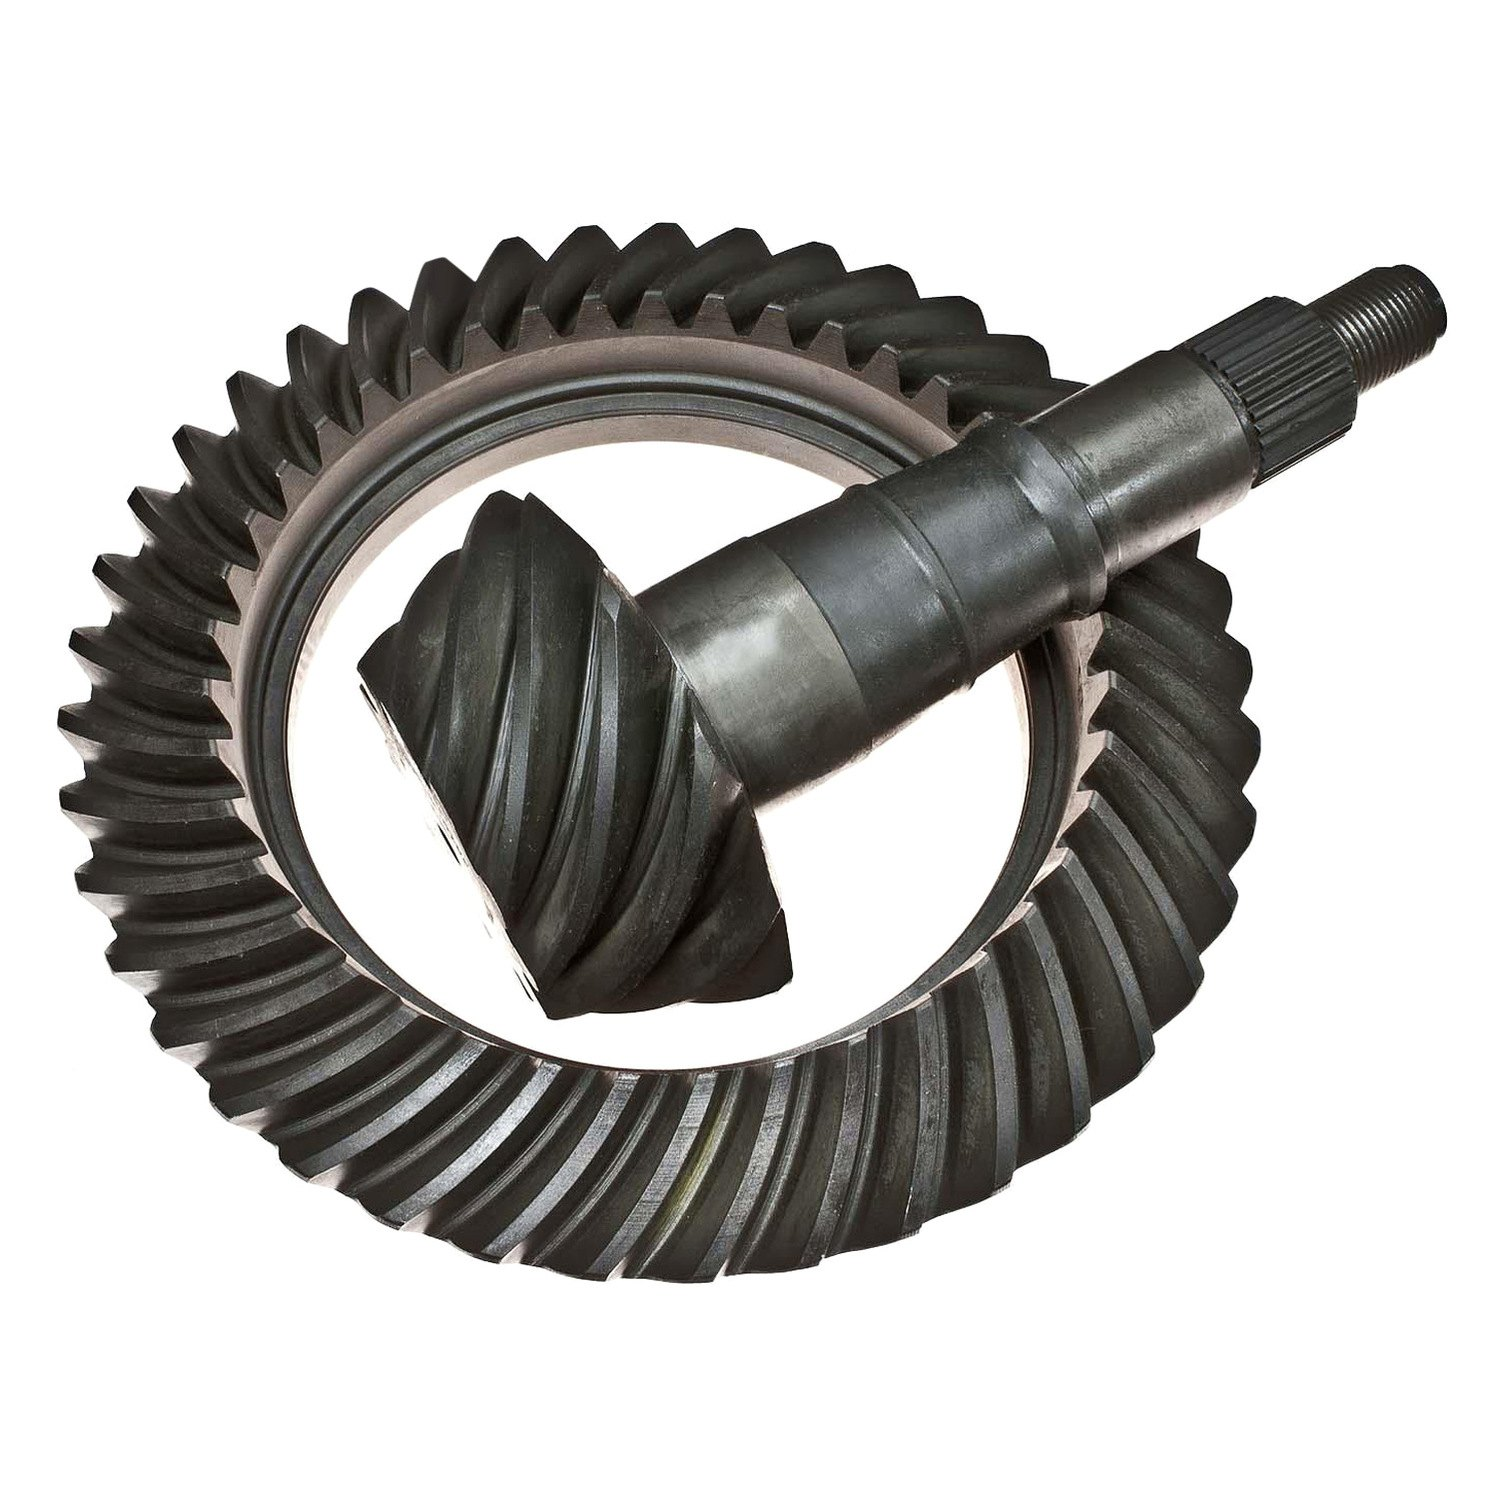 Chevy ring and pinion gear sets